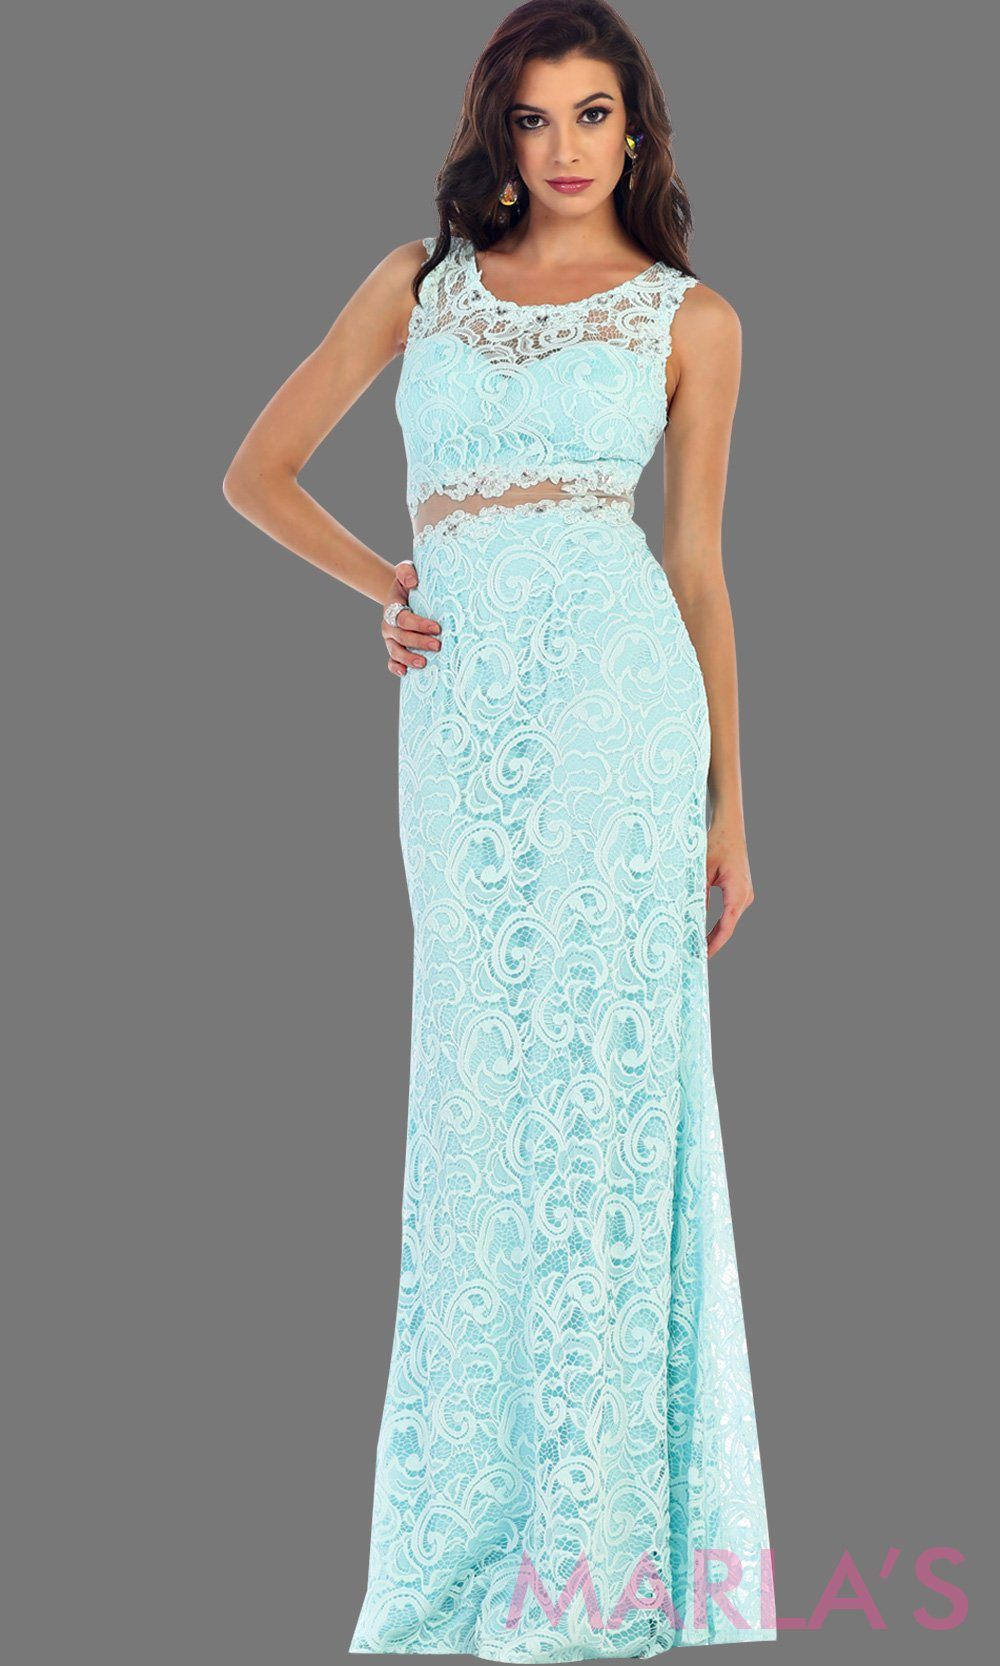 Long simple lace aqua two piece dress. This light blue dress is a perfect long prom dress. The red illusion neckline and waist creates a two piece prom look. Can be worn as a wedding guest dress, worn at a formal event or gala. Available in plus sizes